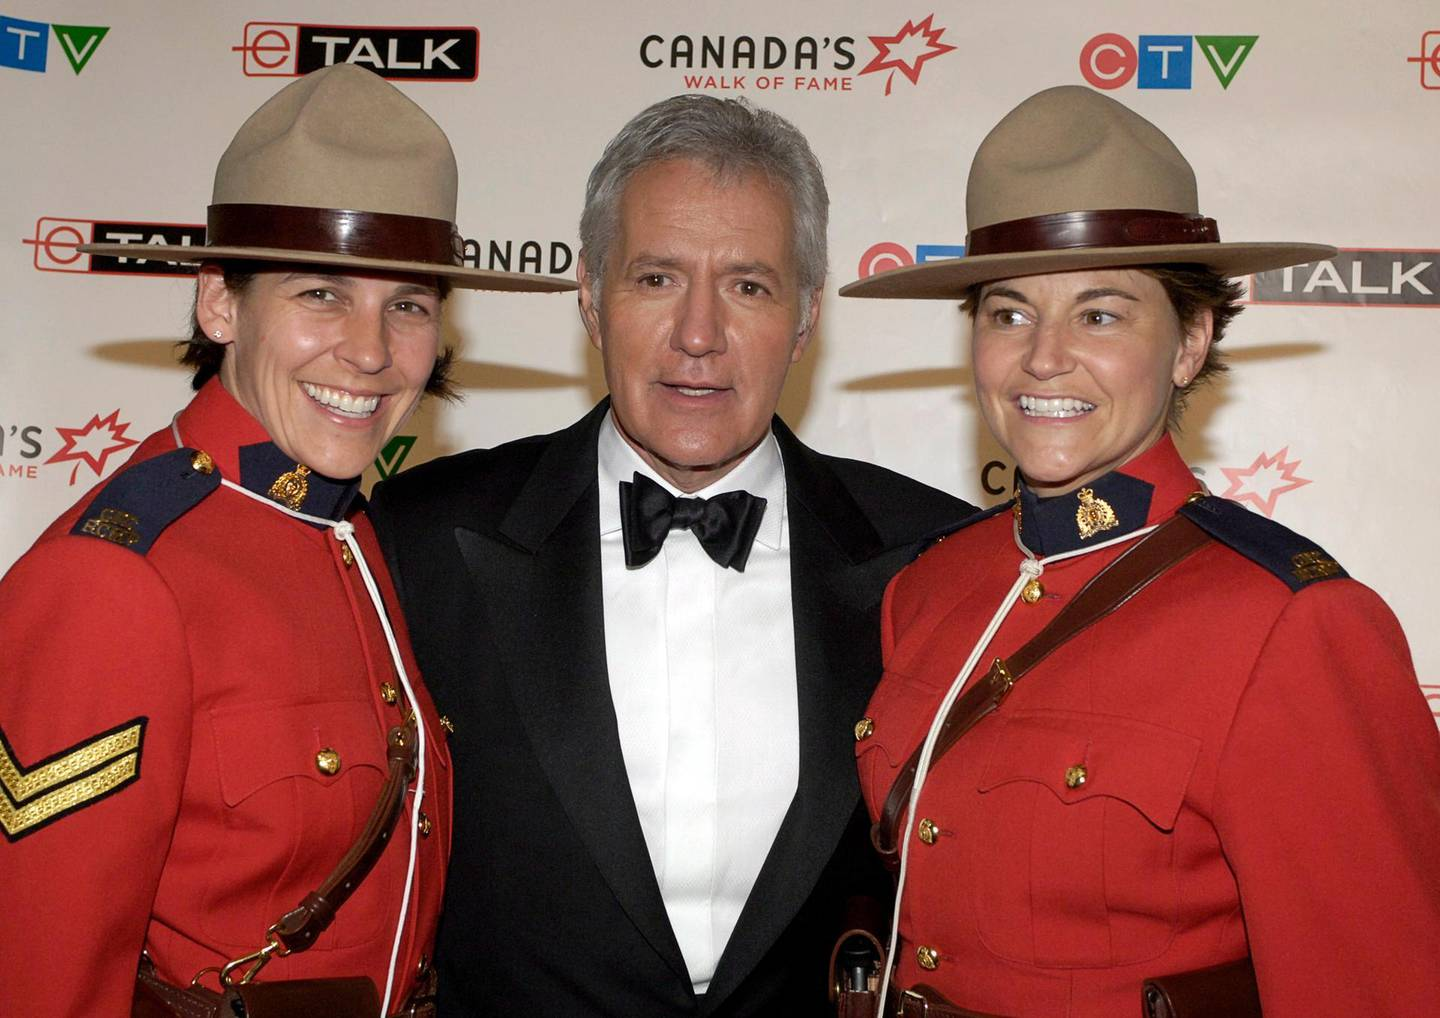 epa08808373 (FILE) - TV game show host Alex Trebek (C) poses with Canadian Mounties Mia Poscente (L) and April Dequanne backstage at the ninth annual Canada's Walk of Fame ceremony in Toronto, Canada, 03 June 2006 (reissued 08 November 2020). Alex Trebek, legendary host of TV game show Jeopardy, has died on 08 November 2020 at the age of 80, media report.  EPA/WARREN TODA